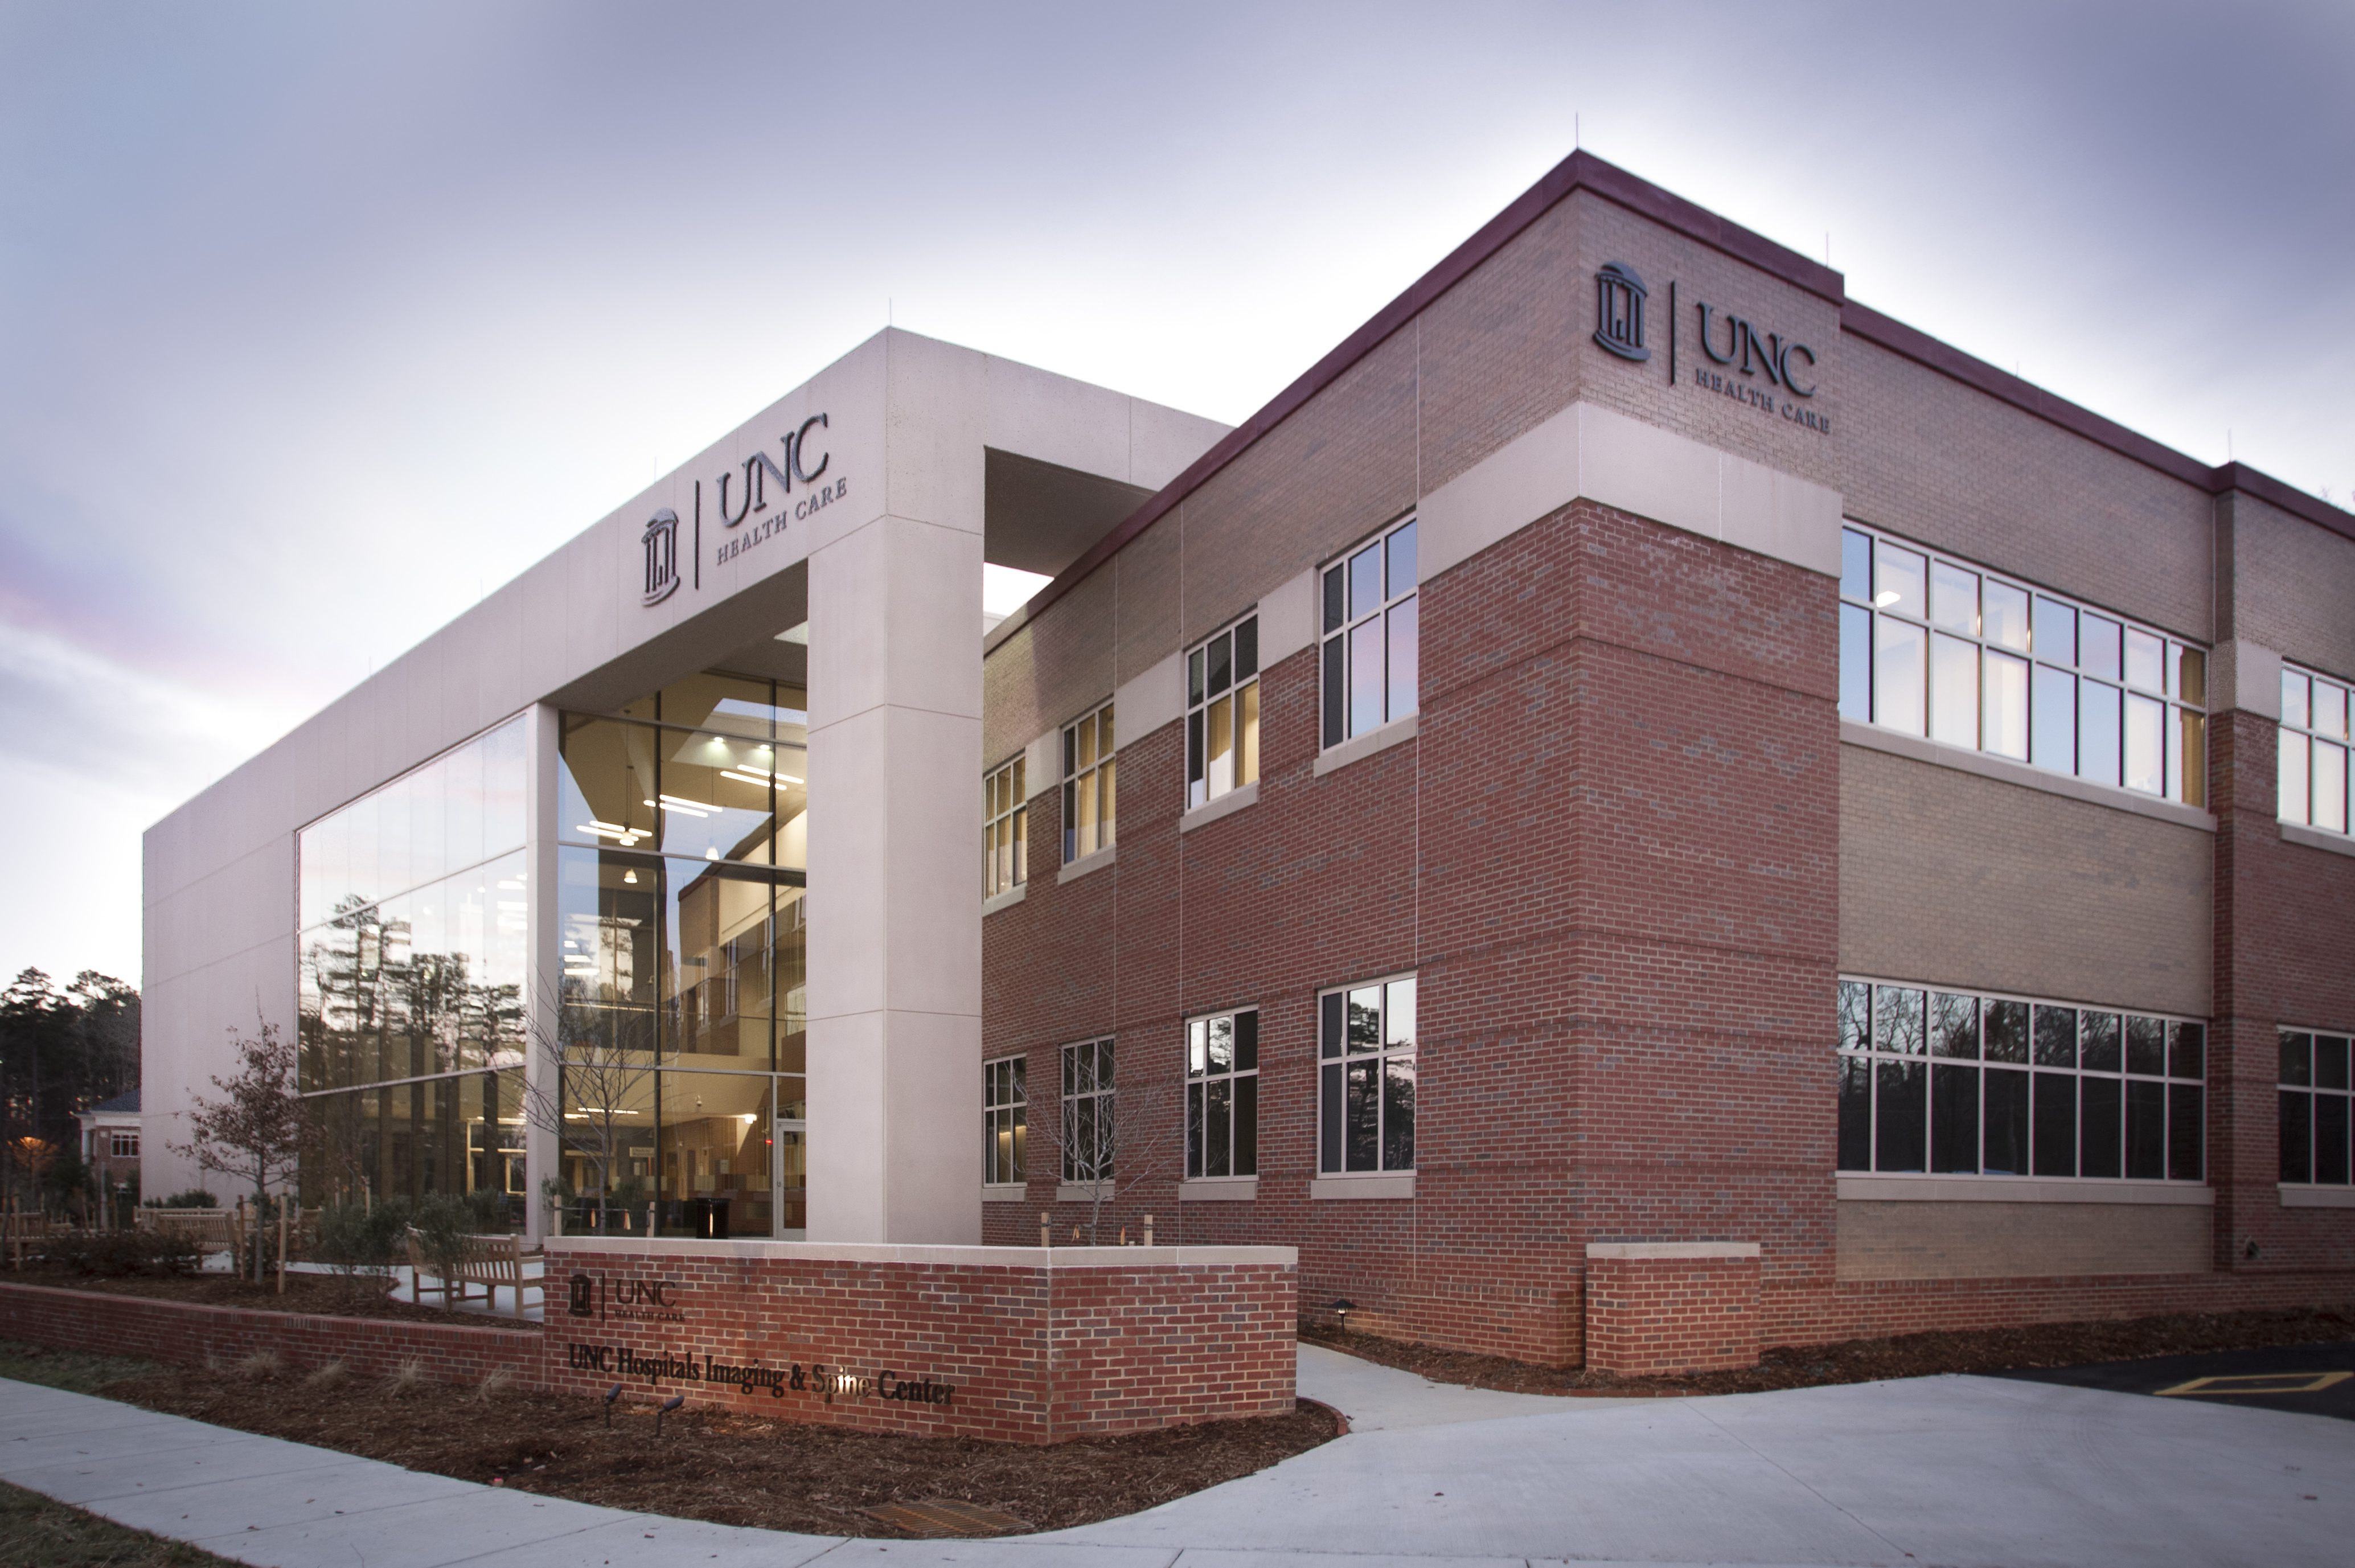 UNC Imaging and Spine Center